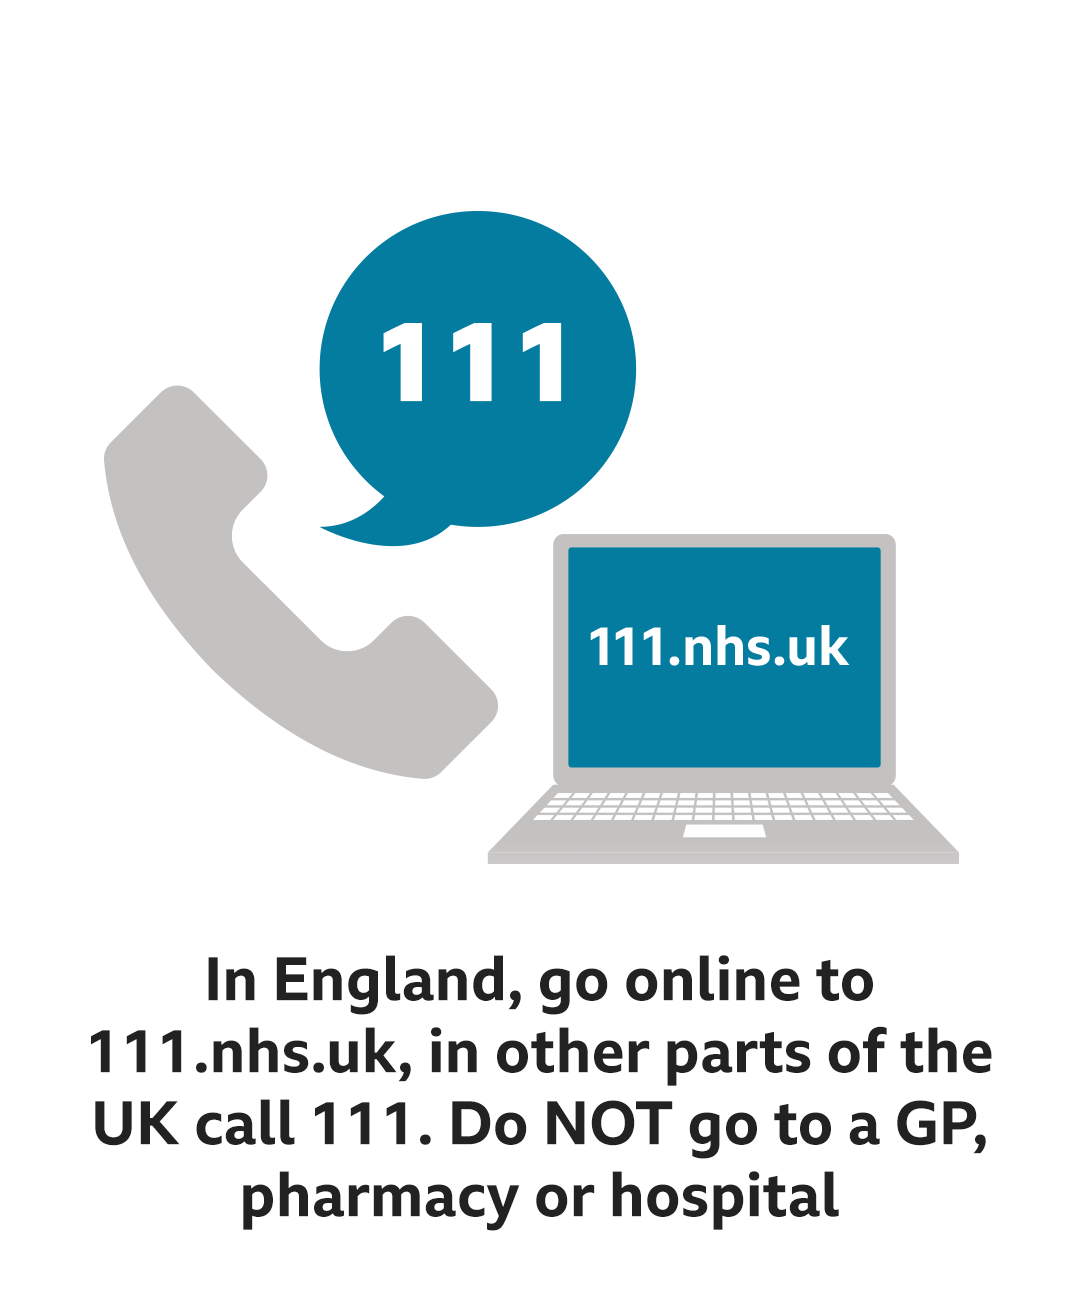 In England, go online to 111.nhs.uk, in other parts of the UK call 111. Do NOT go to a GP, pharmacy or hospital